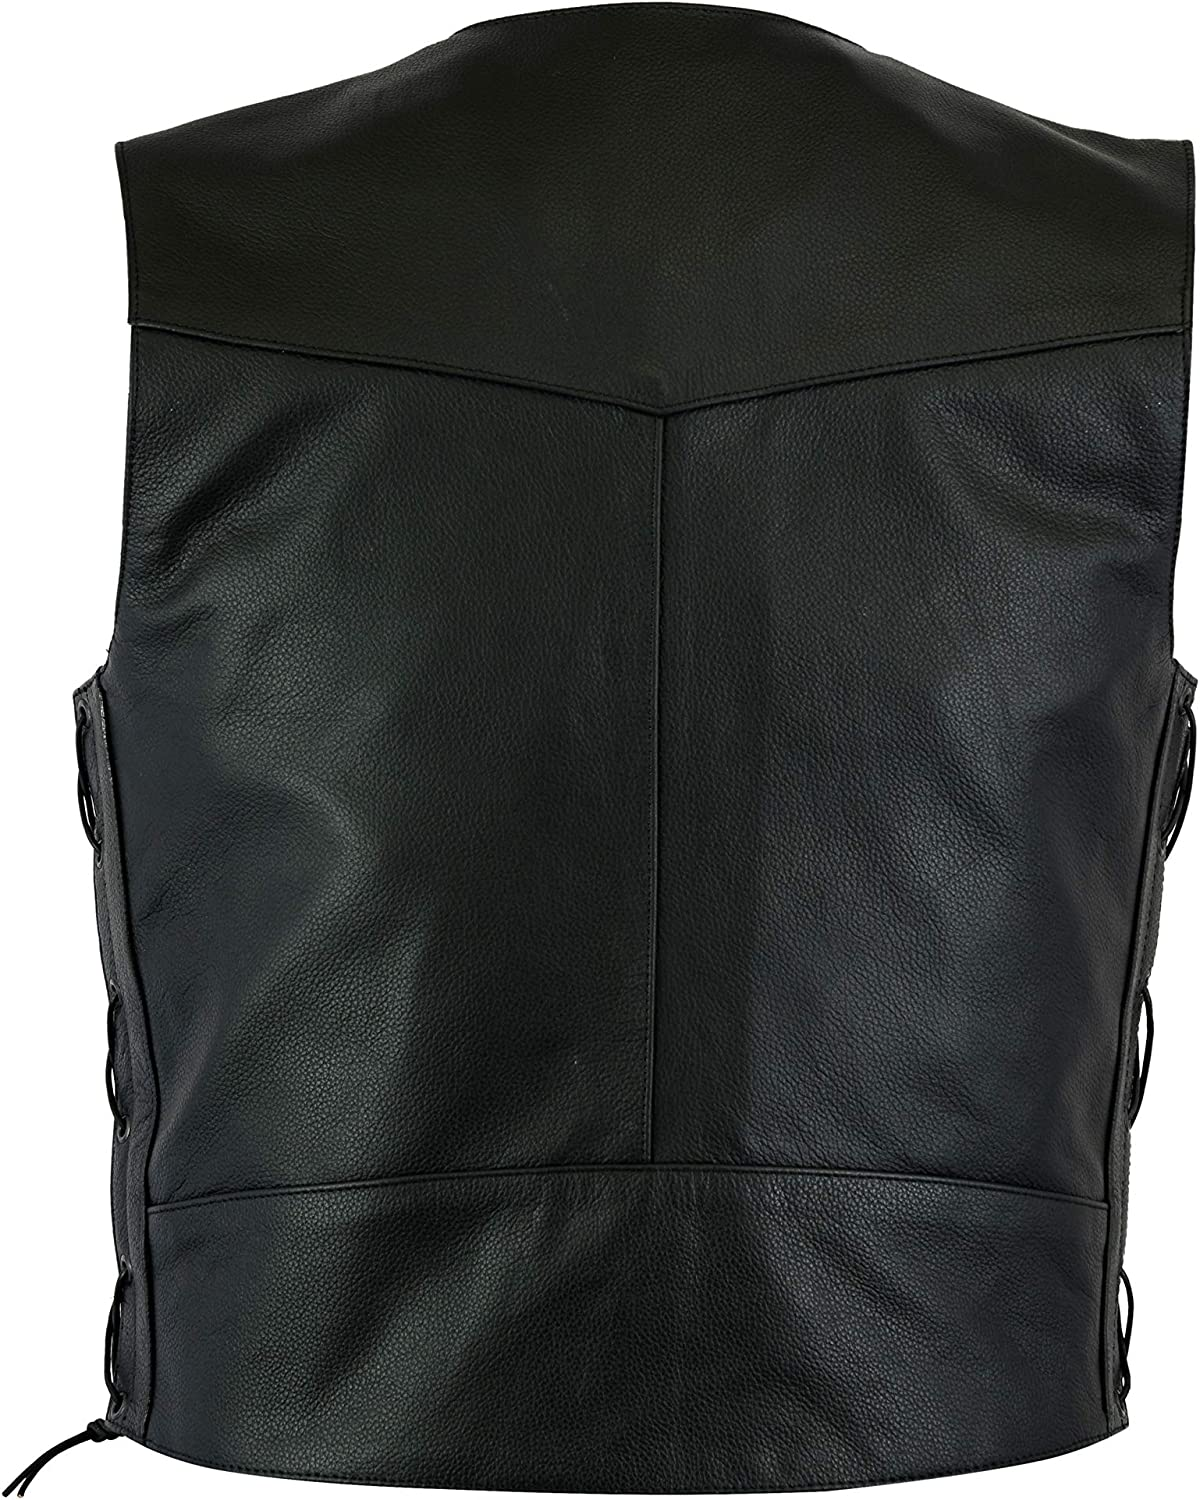 Mens Black Quality 4 Pocket Leather Motorcycle Biker Classic Waistcoat S to 14XL